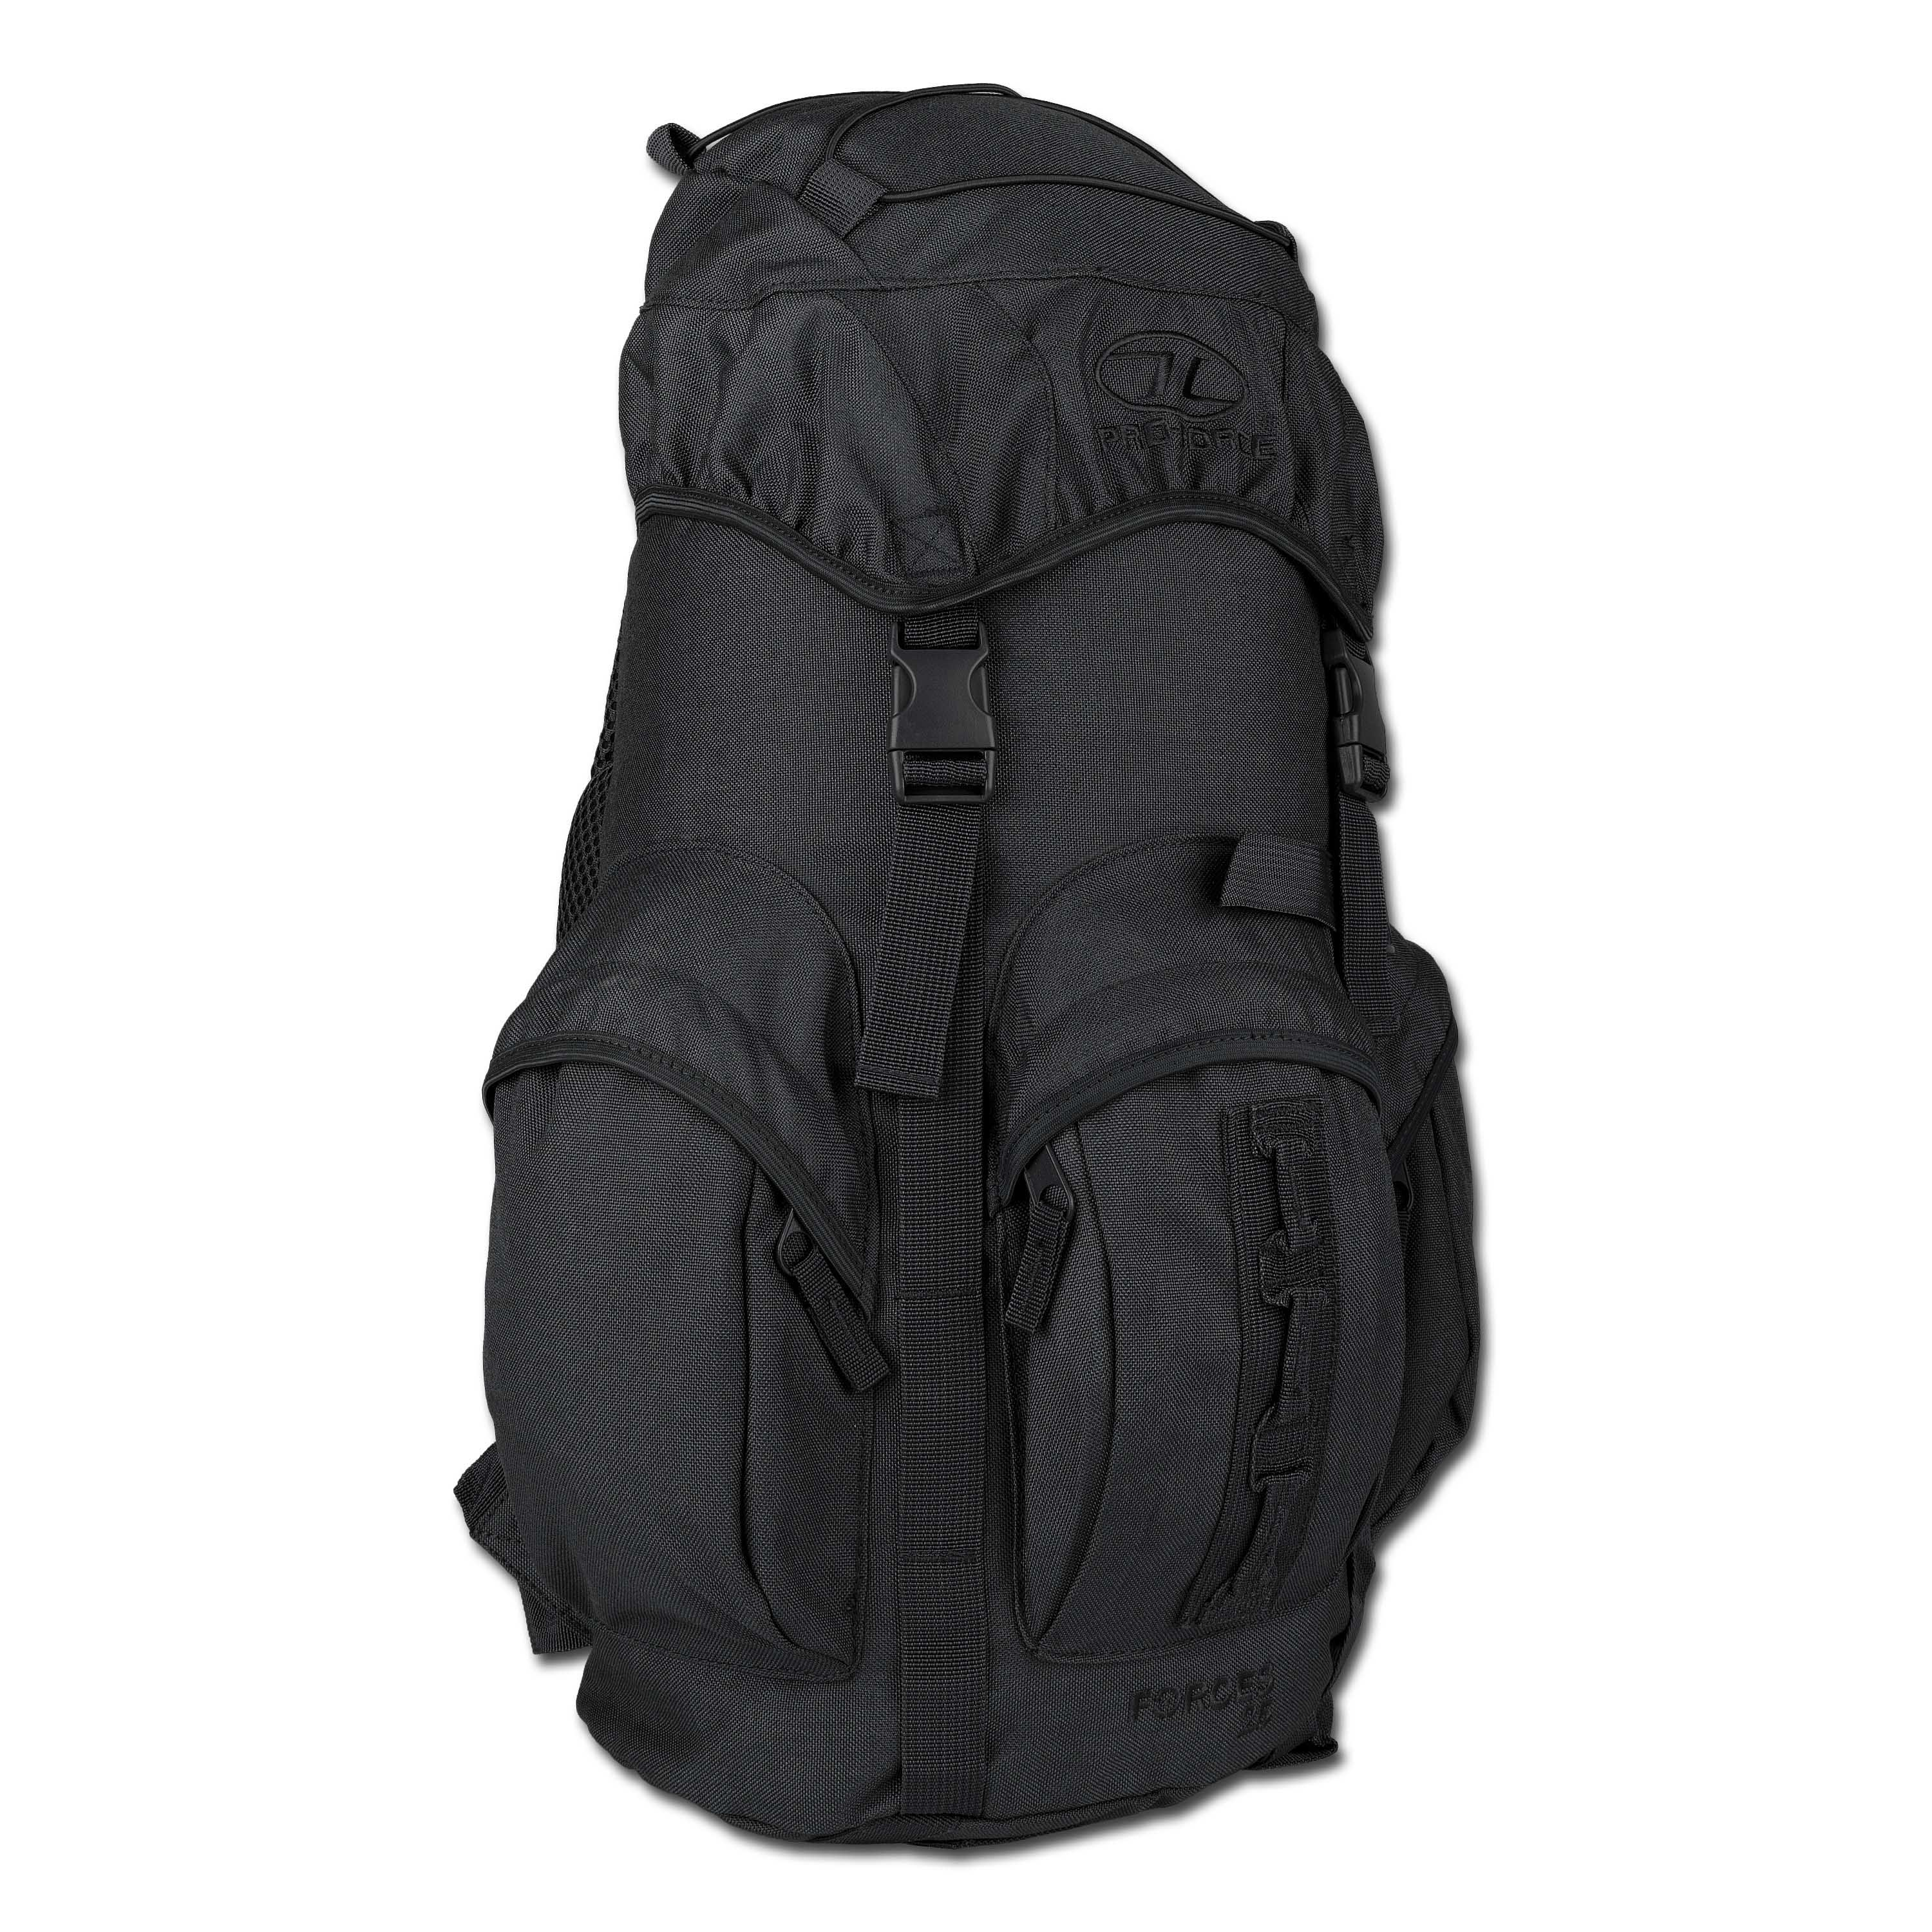 Mochila Pro Force New Forces 25 L negra